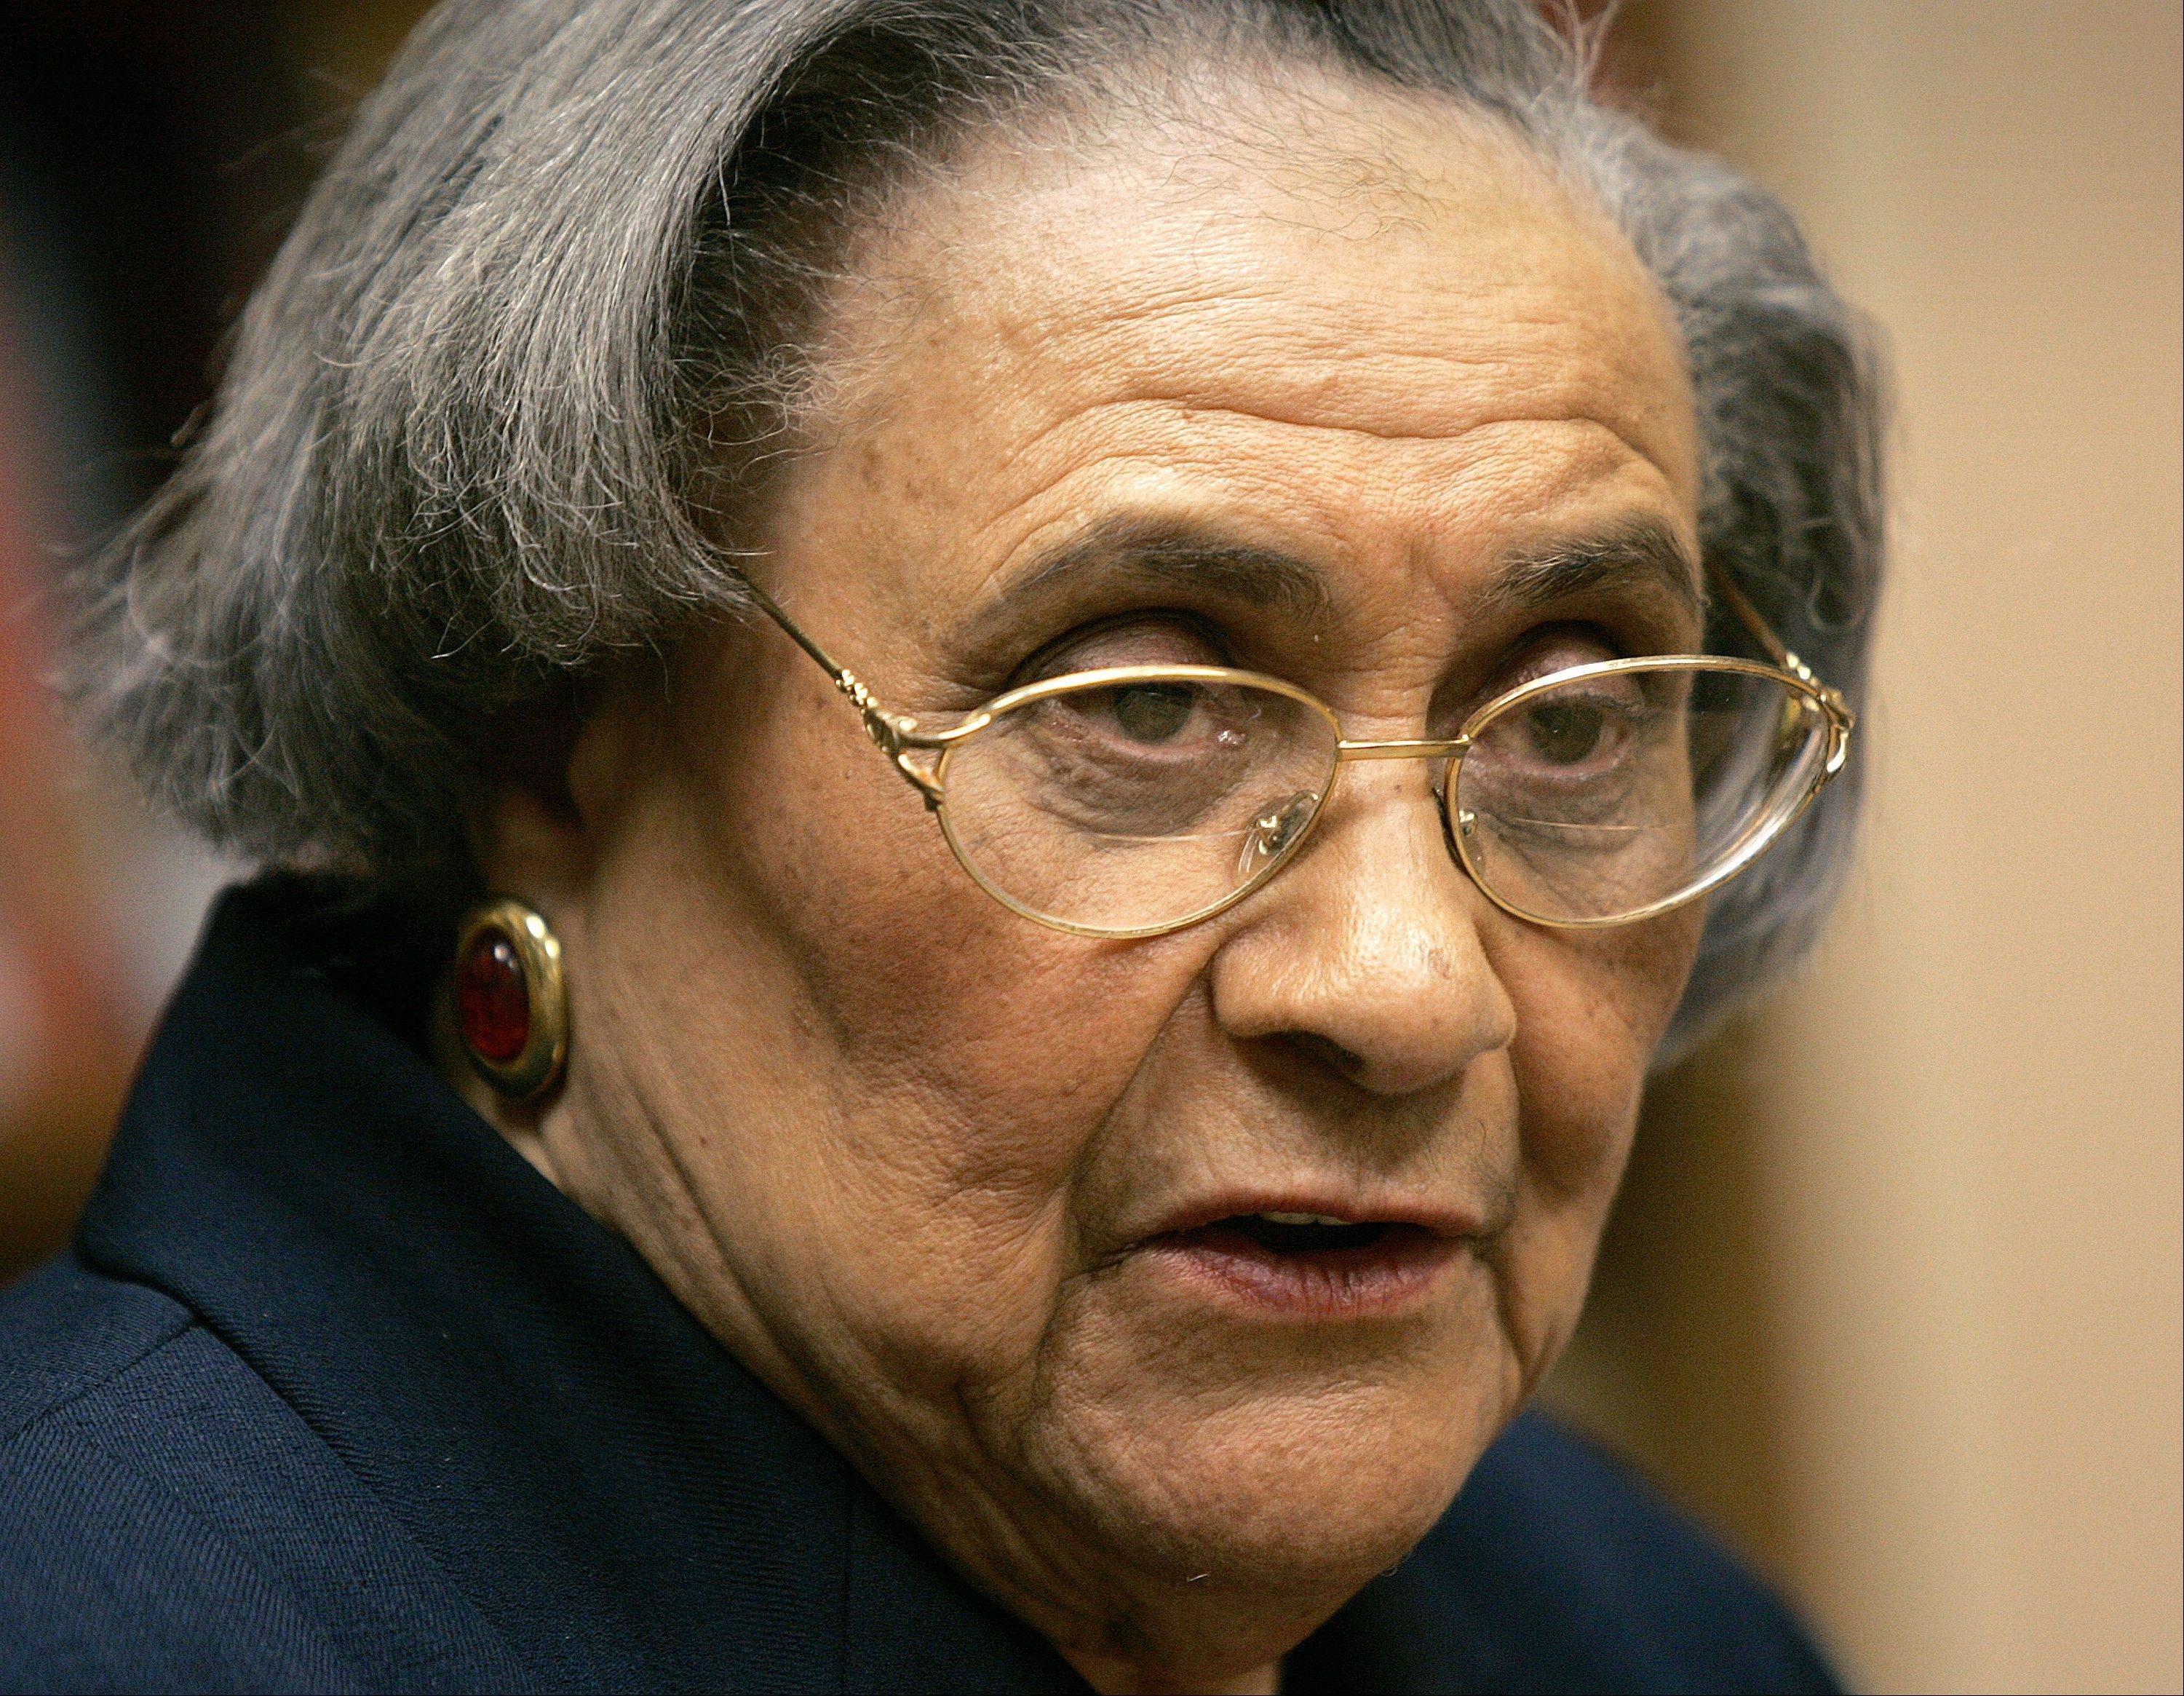 This Jan. 31, 2005, file photo shows Essie Mae Washington-Williams during a book signing in Washington. Washington-Williams, the daughter of one-time segregationist Sen. Strom Thurmond who kept her parentage secret for more than 70 years to avoid damaging his political career, died Monday, Feb. 4, 2013. She was 87.